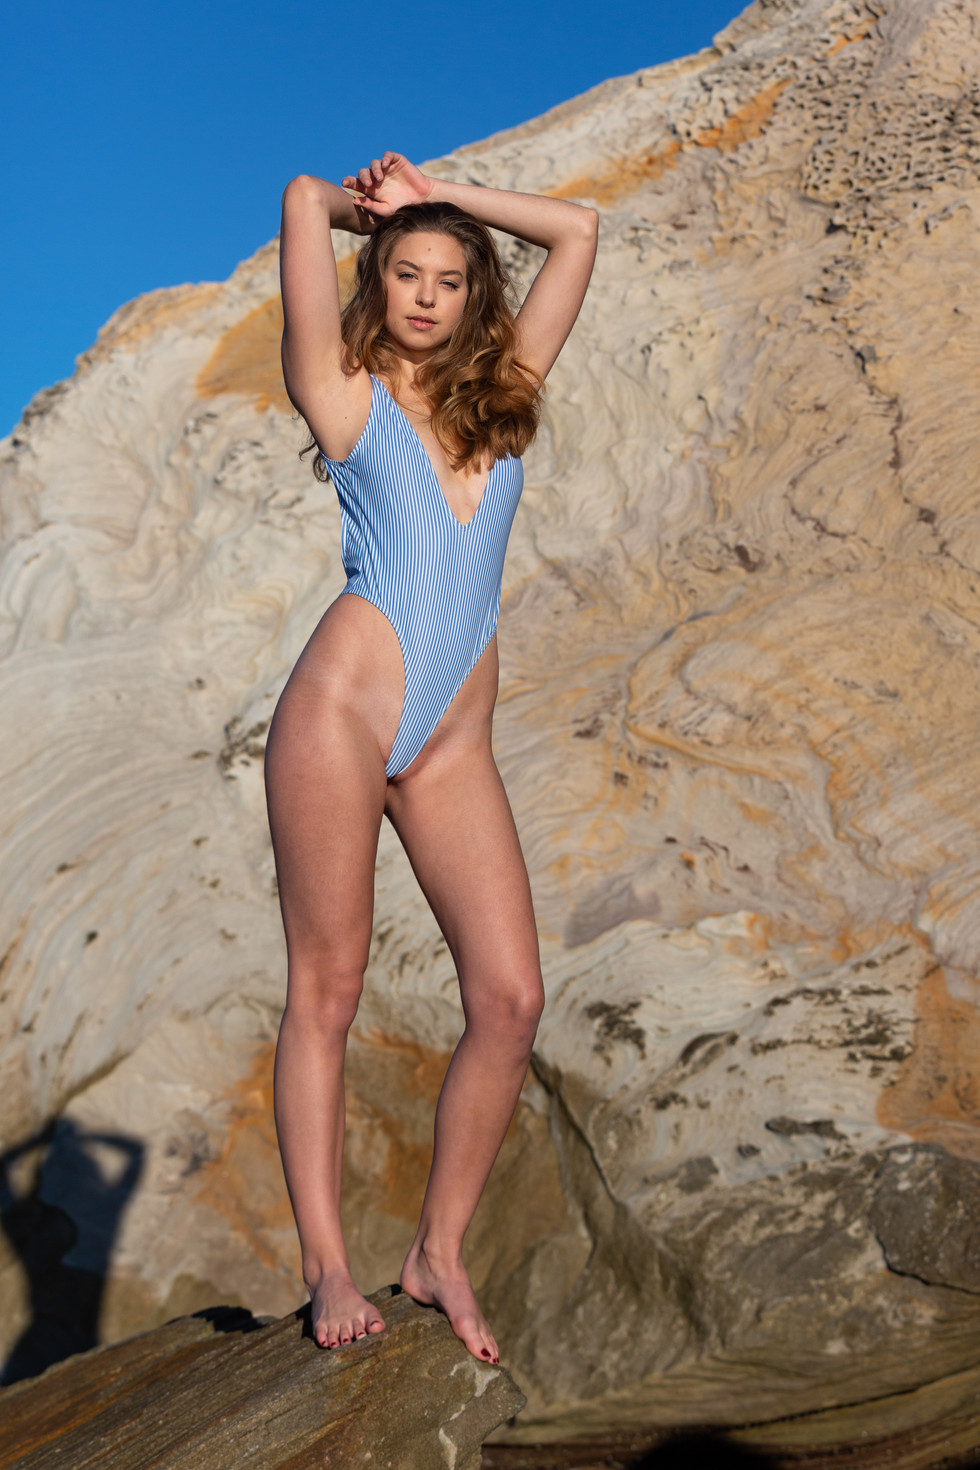 Charlotte_by_CoogeePhotography-1062147.j